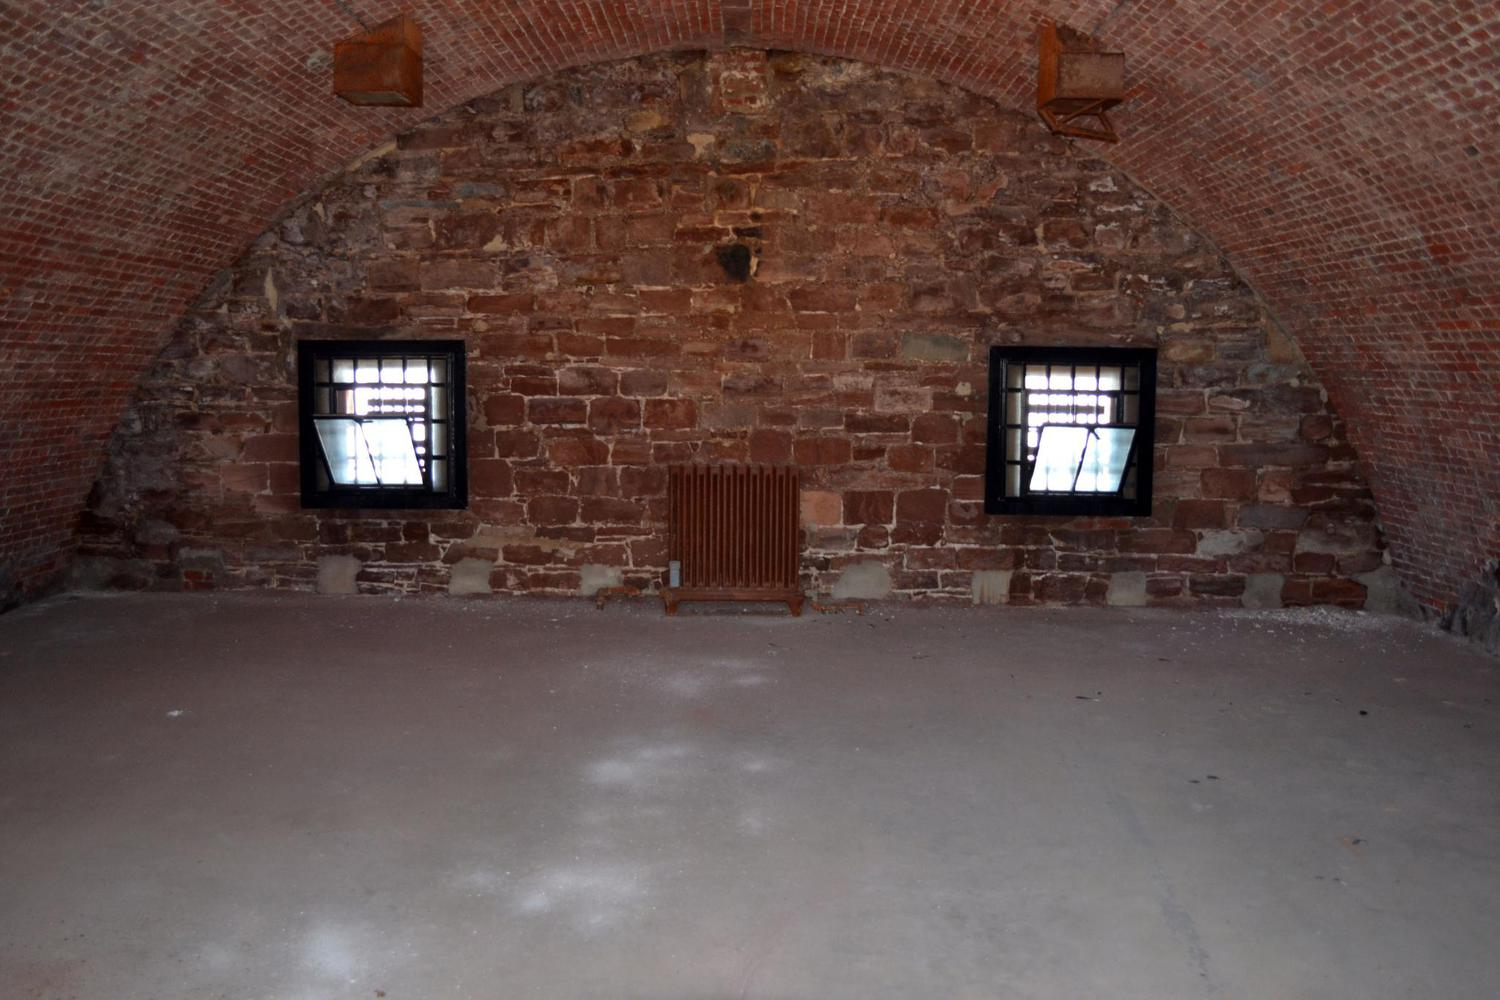 Casemate inside of Castle Williams | Originally used to house cannon, it held Confederate soldiers during the Civil War, and then used as a military prison for members of the Army who were AWOL or committed other military crimes.